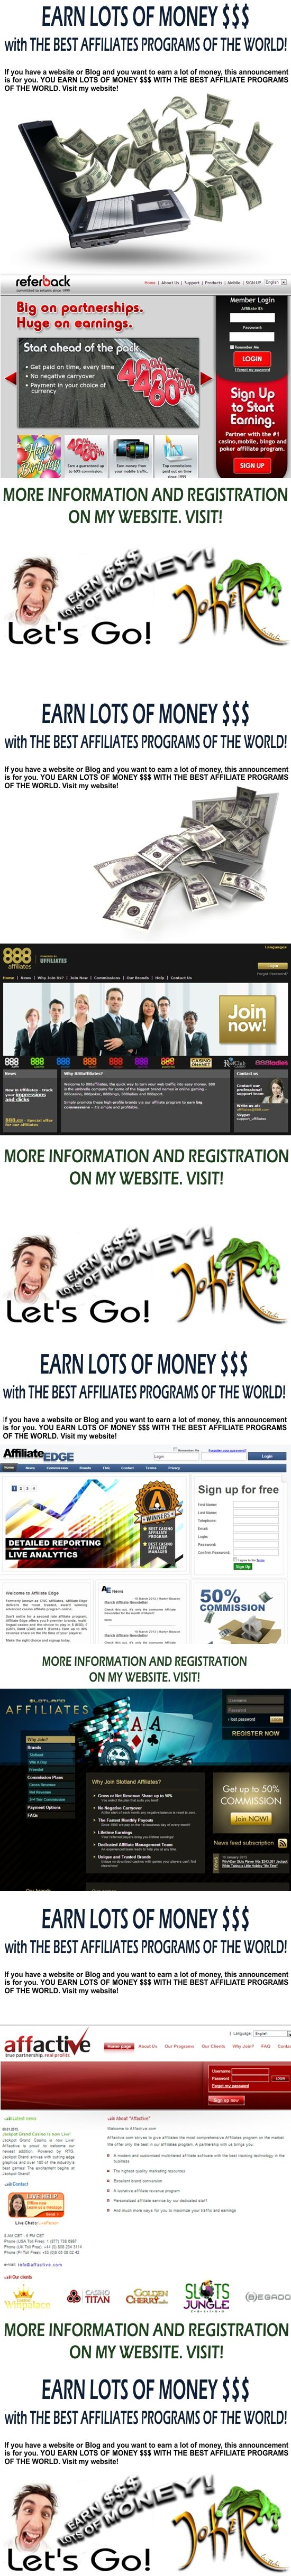 EARN LOTS OF MONEY $$$ with THE BEST AFFILIATES PROGRAMS OF THE WORLD!    If you have a website or Blog and you want to earn a lot of money, this announcement is for you. YOU EARN LOTS OF MONEY $$$ WITH THE BEST AFFILIATE PROGRAMS OF THE WORLD. Visit my website! > http://bn-1.weebly.com